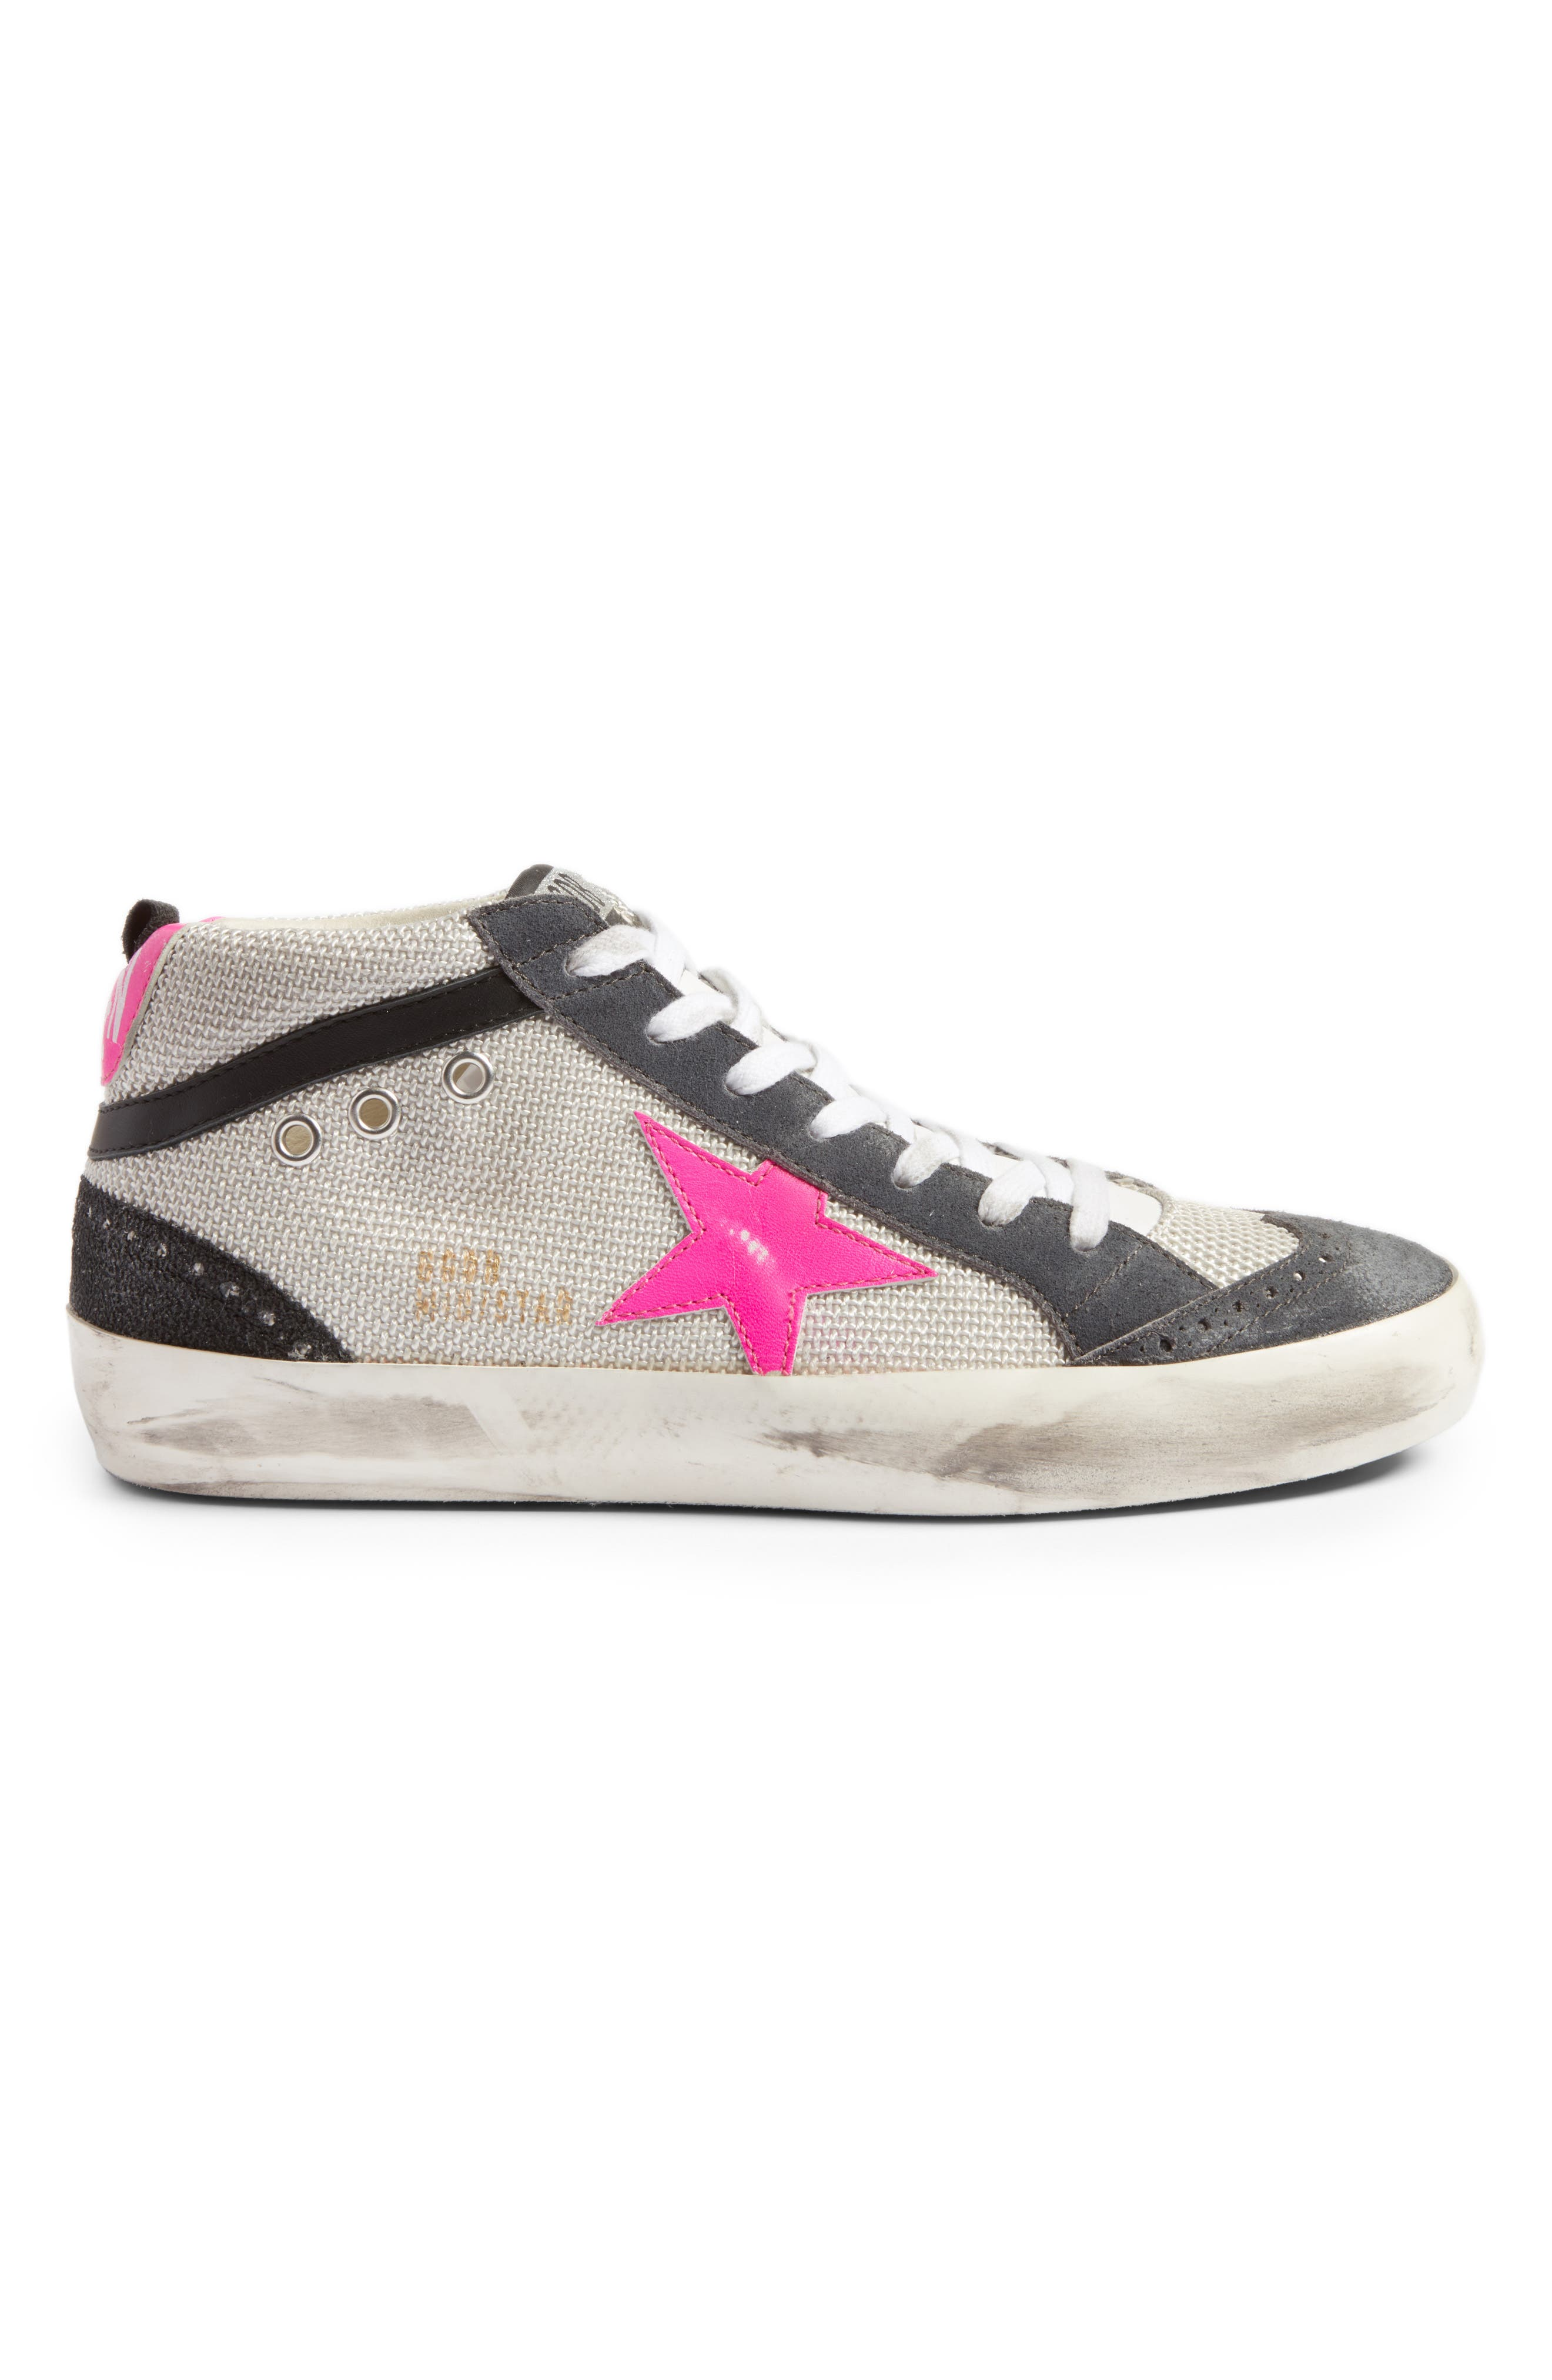 Star Mid Top Sneaker,                             Alternate thumbnail 3, color,                             Grey/ Pink